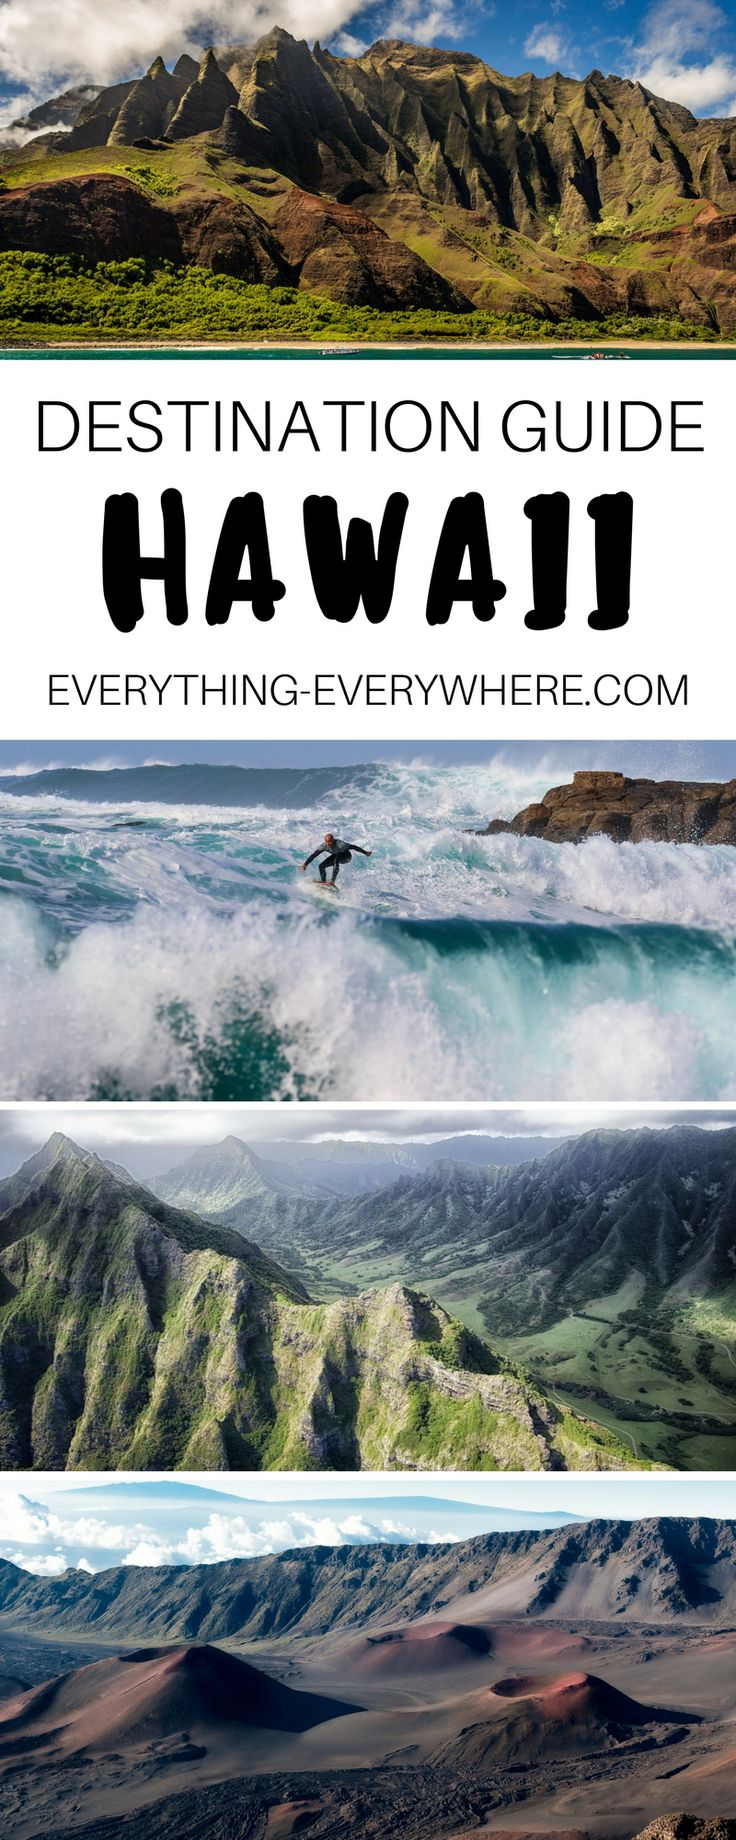 Best Island To Visit In Hawaii For Hikers